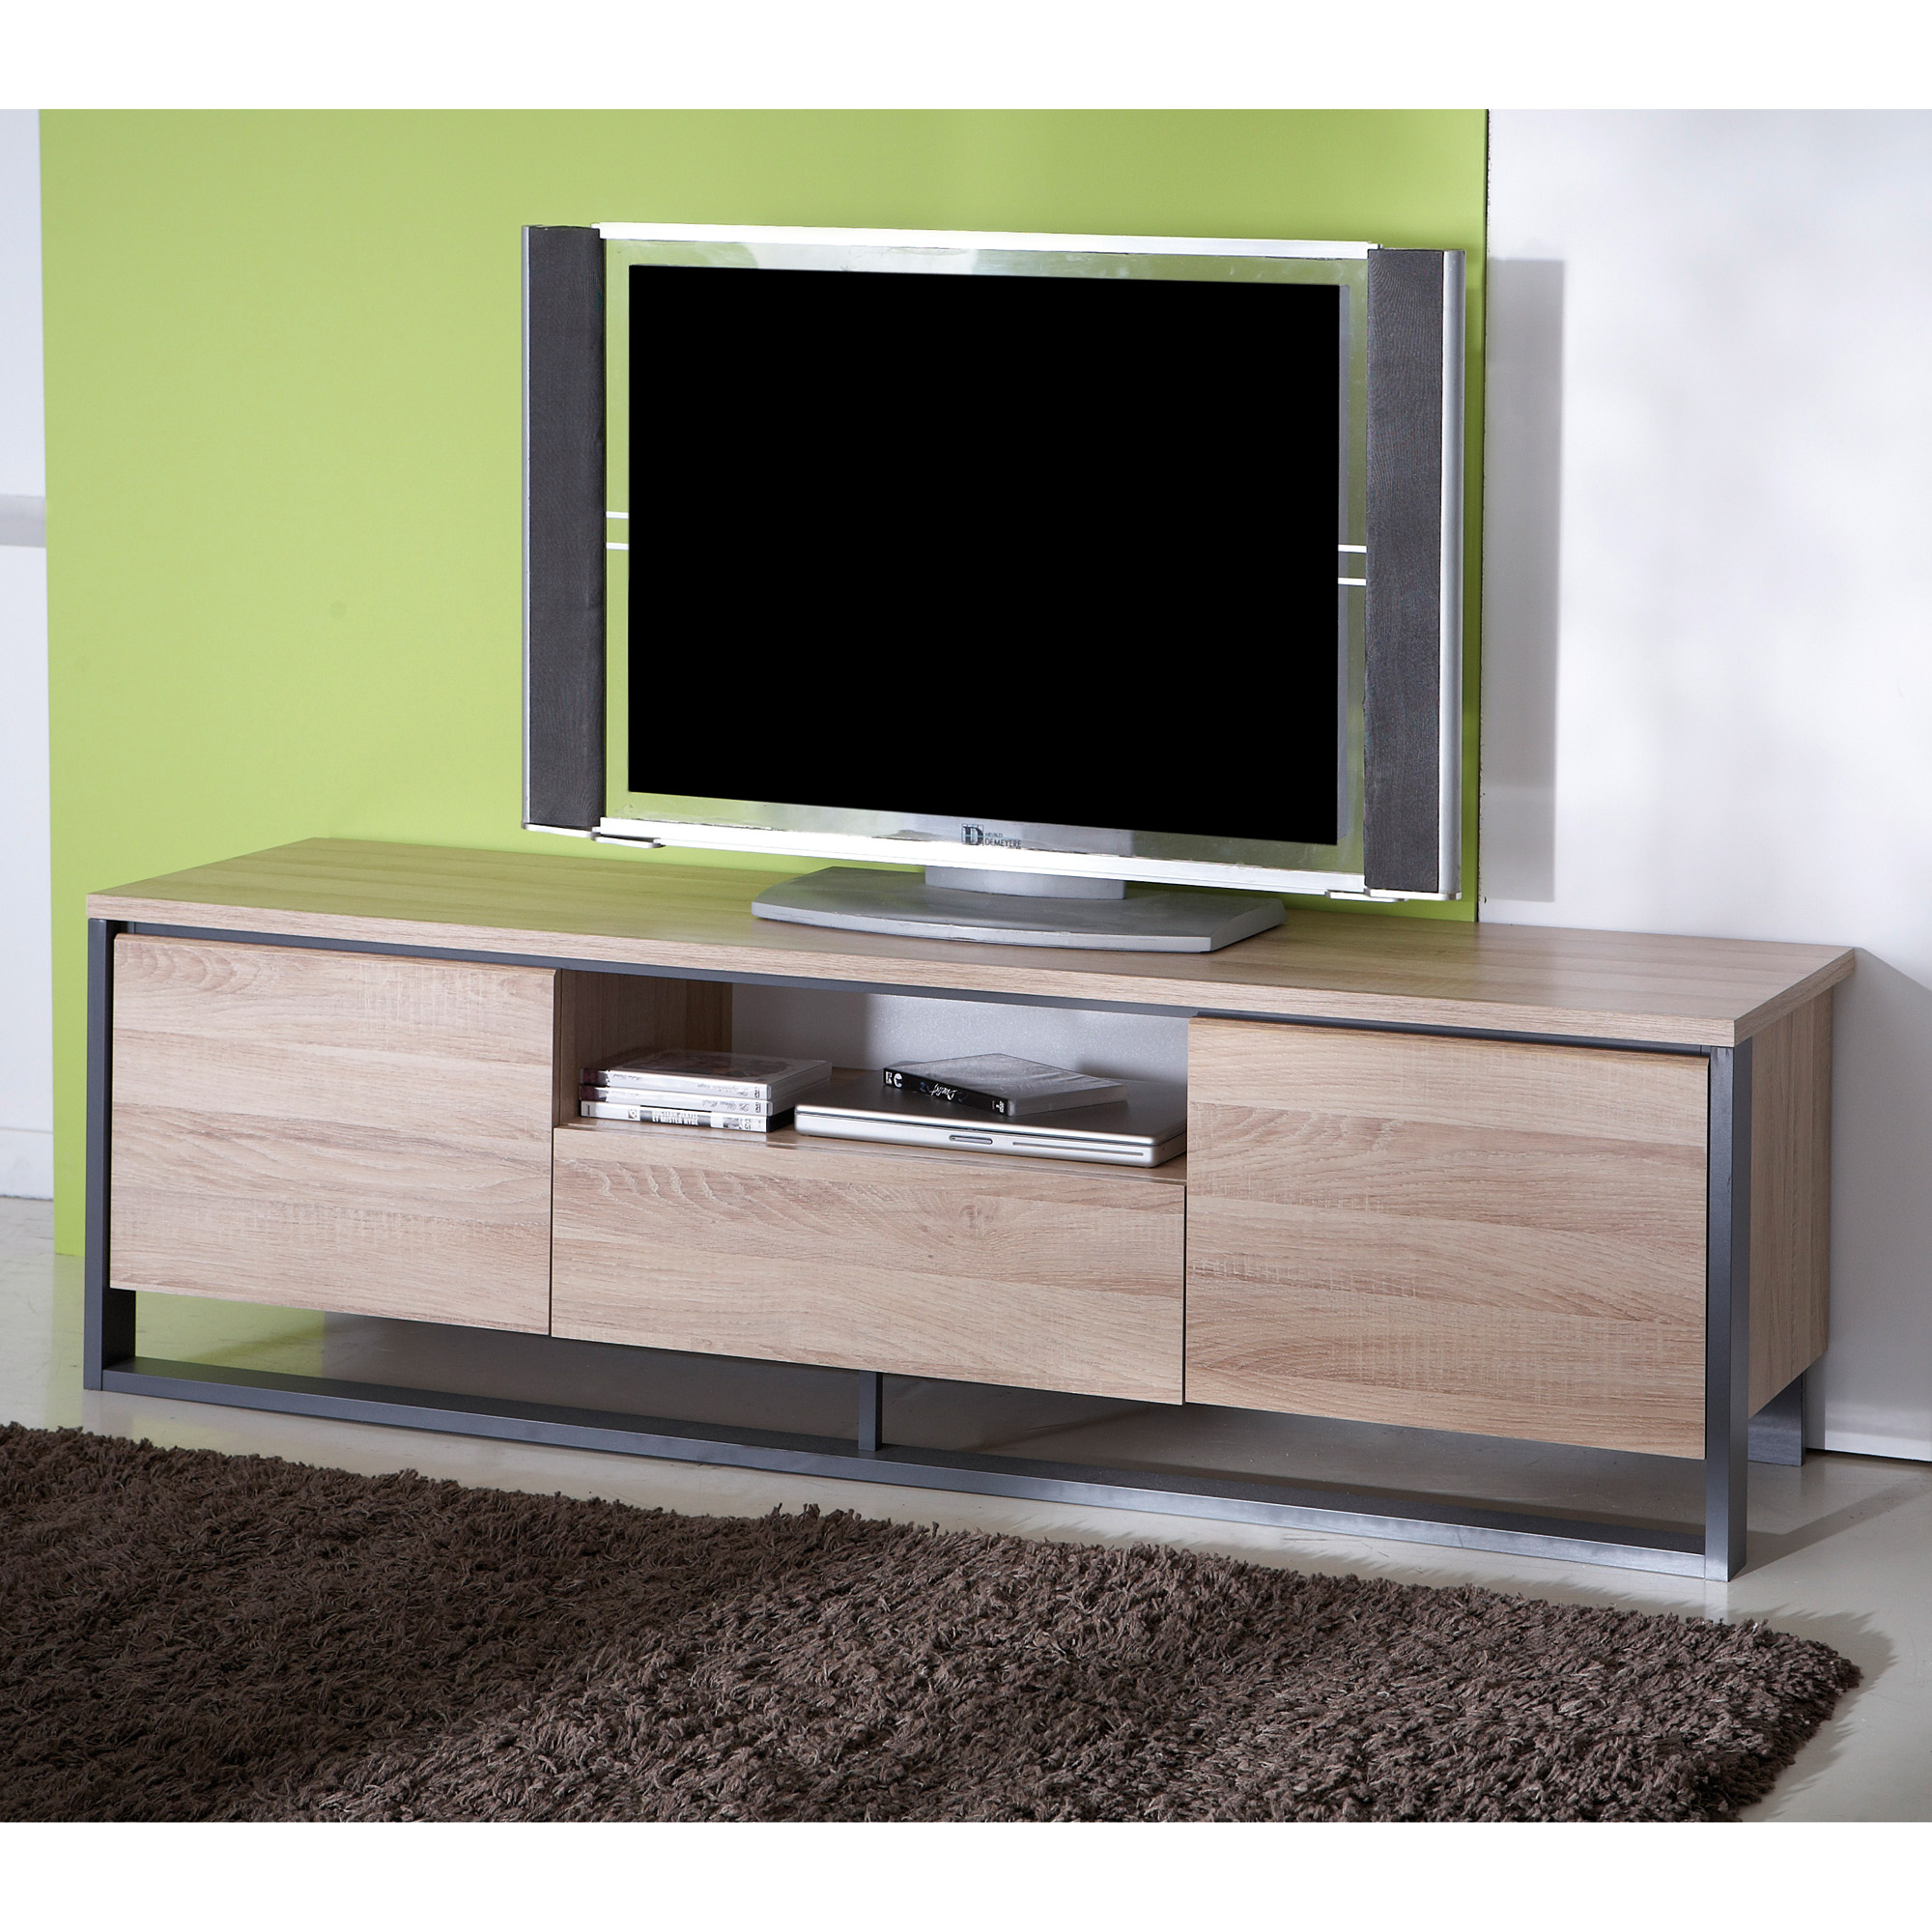 meuble tv ferme par un tirroir. Black Bedroom Furniture Sets. Home Design Ideas